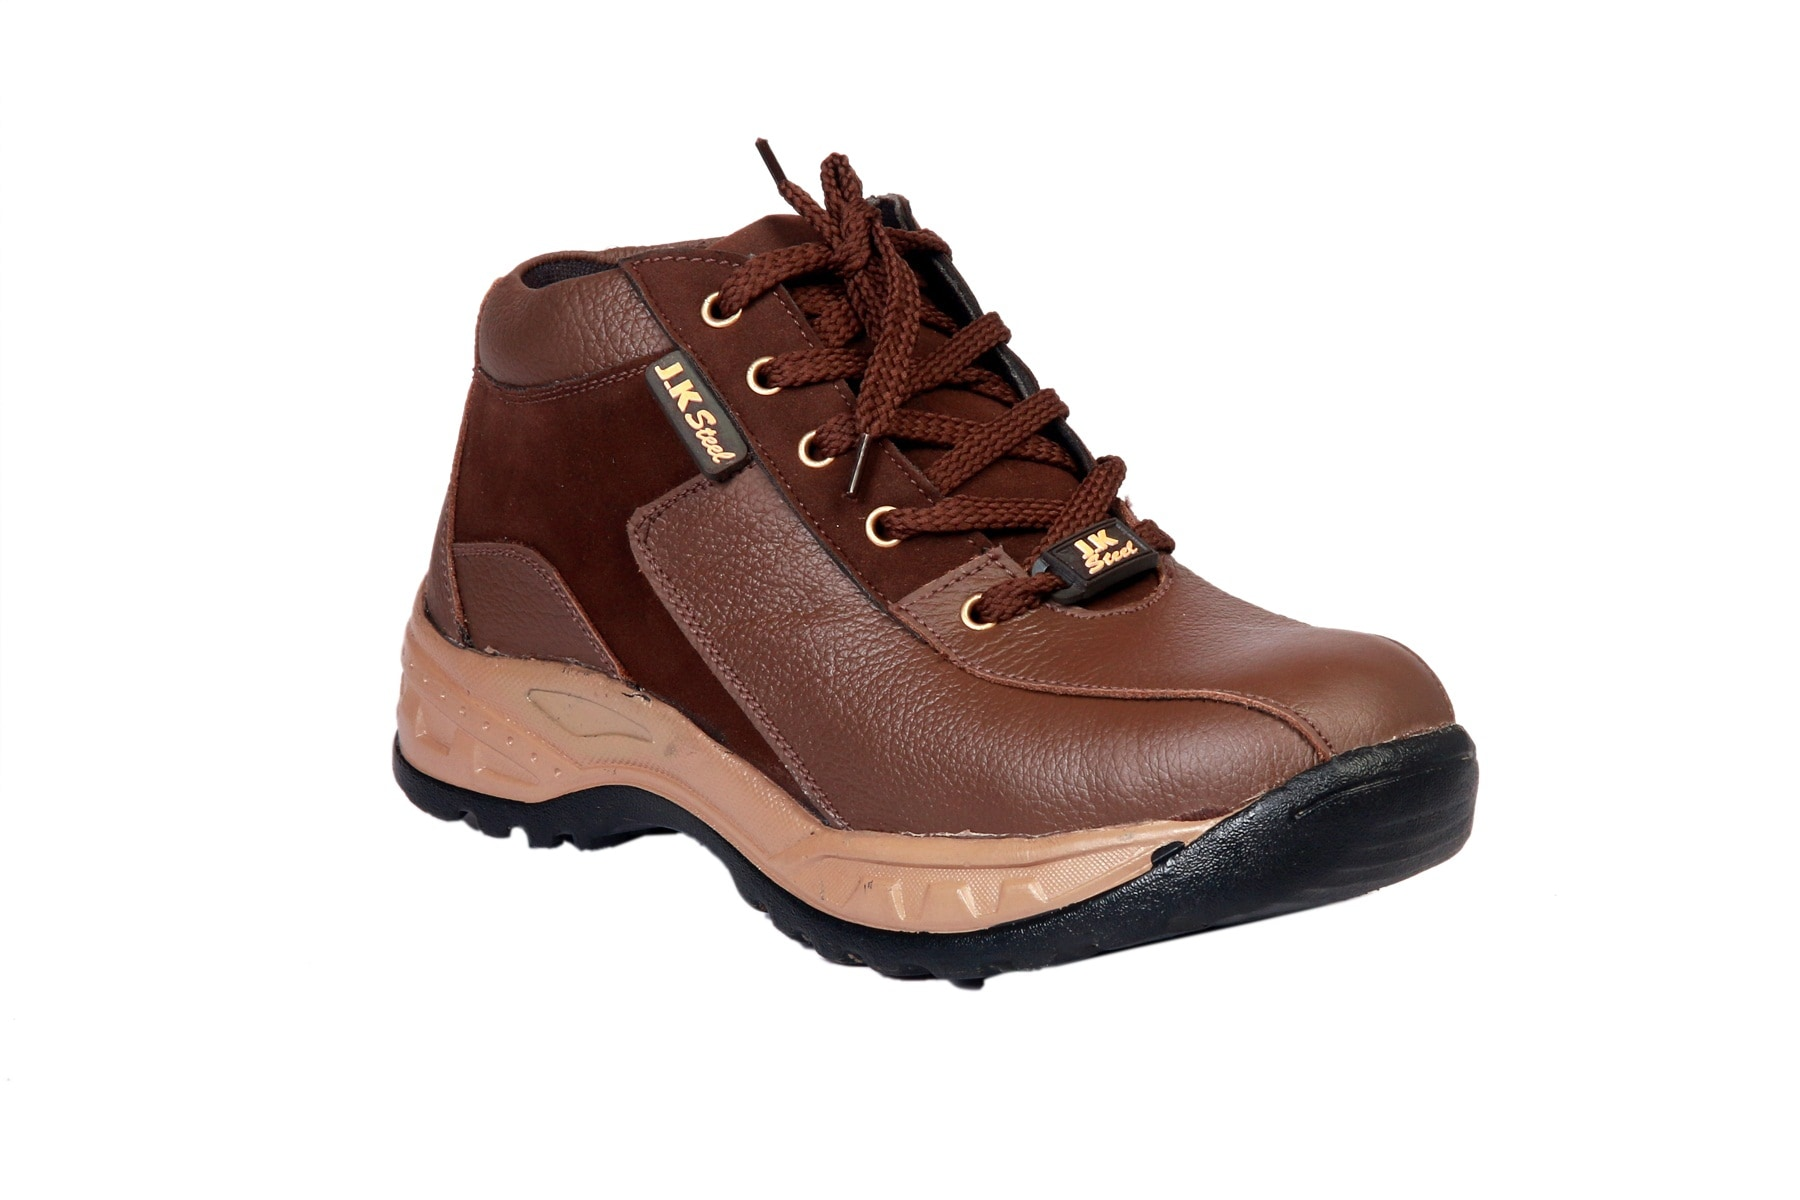 JK STEEL DURABLE AIRMIX STUCKON CHEAPEST BUDGET SAFETY SHOES JKP0164BRN (BROWN,6-10,1 PAIR)